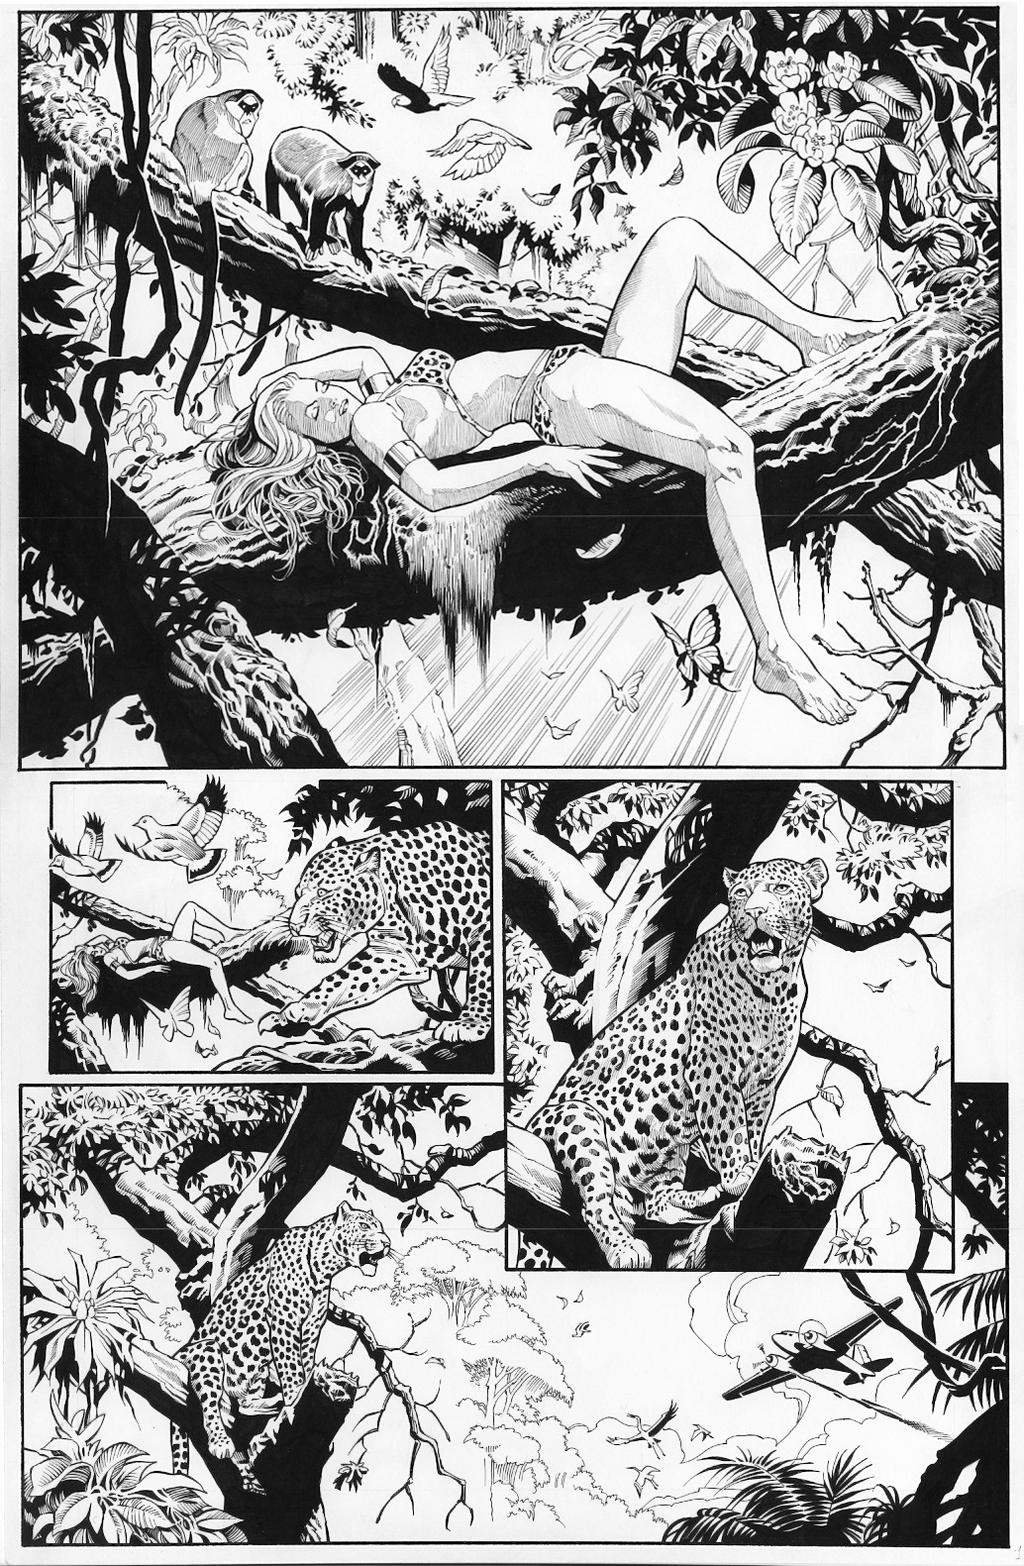 Sheena inspired a wealth of similar comic book jungle queens.